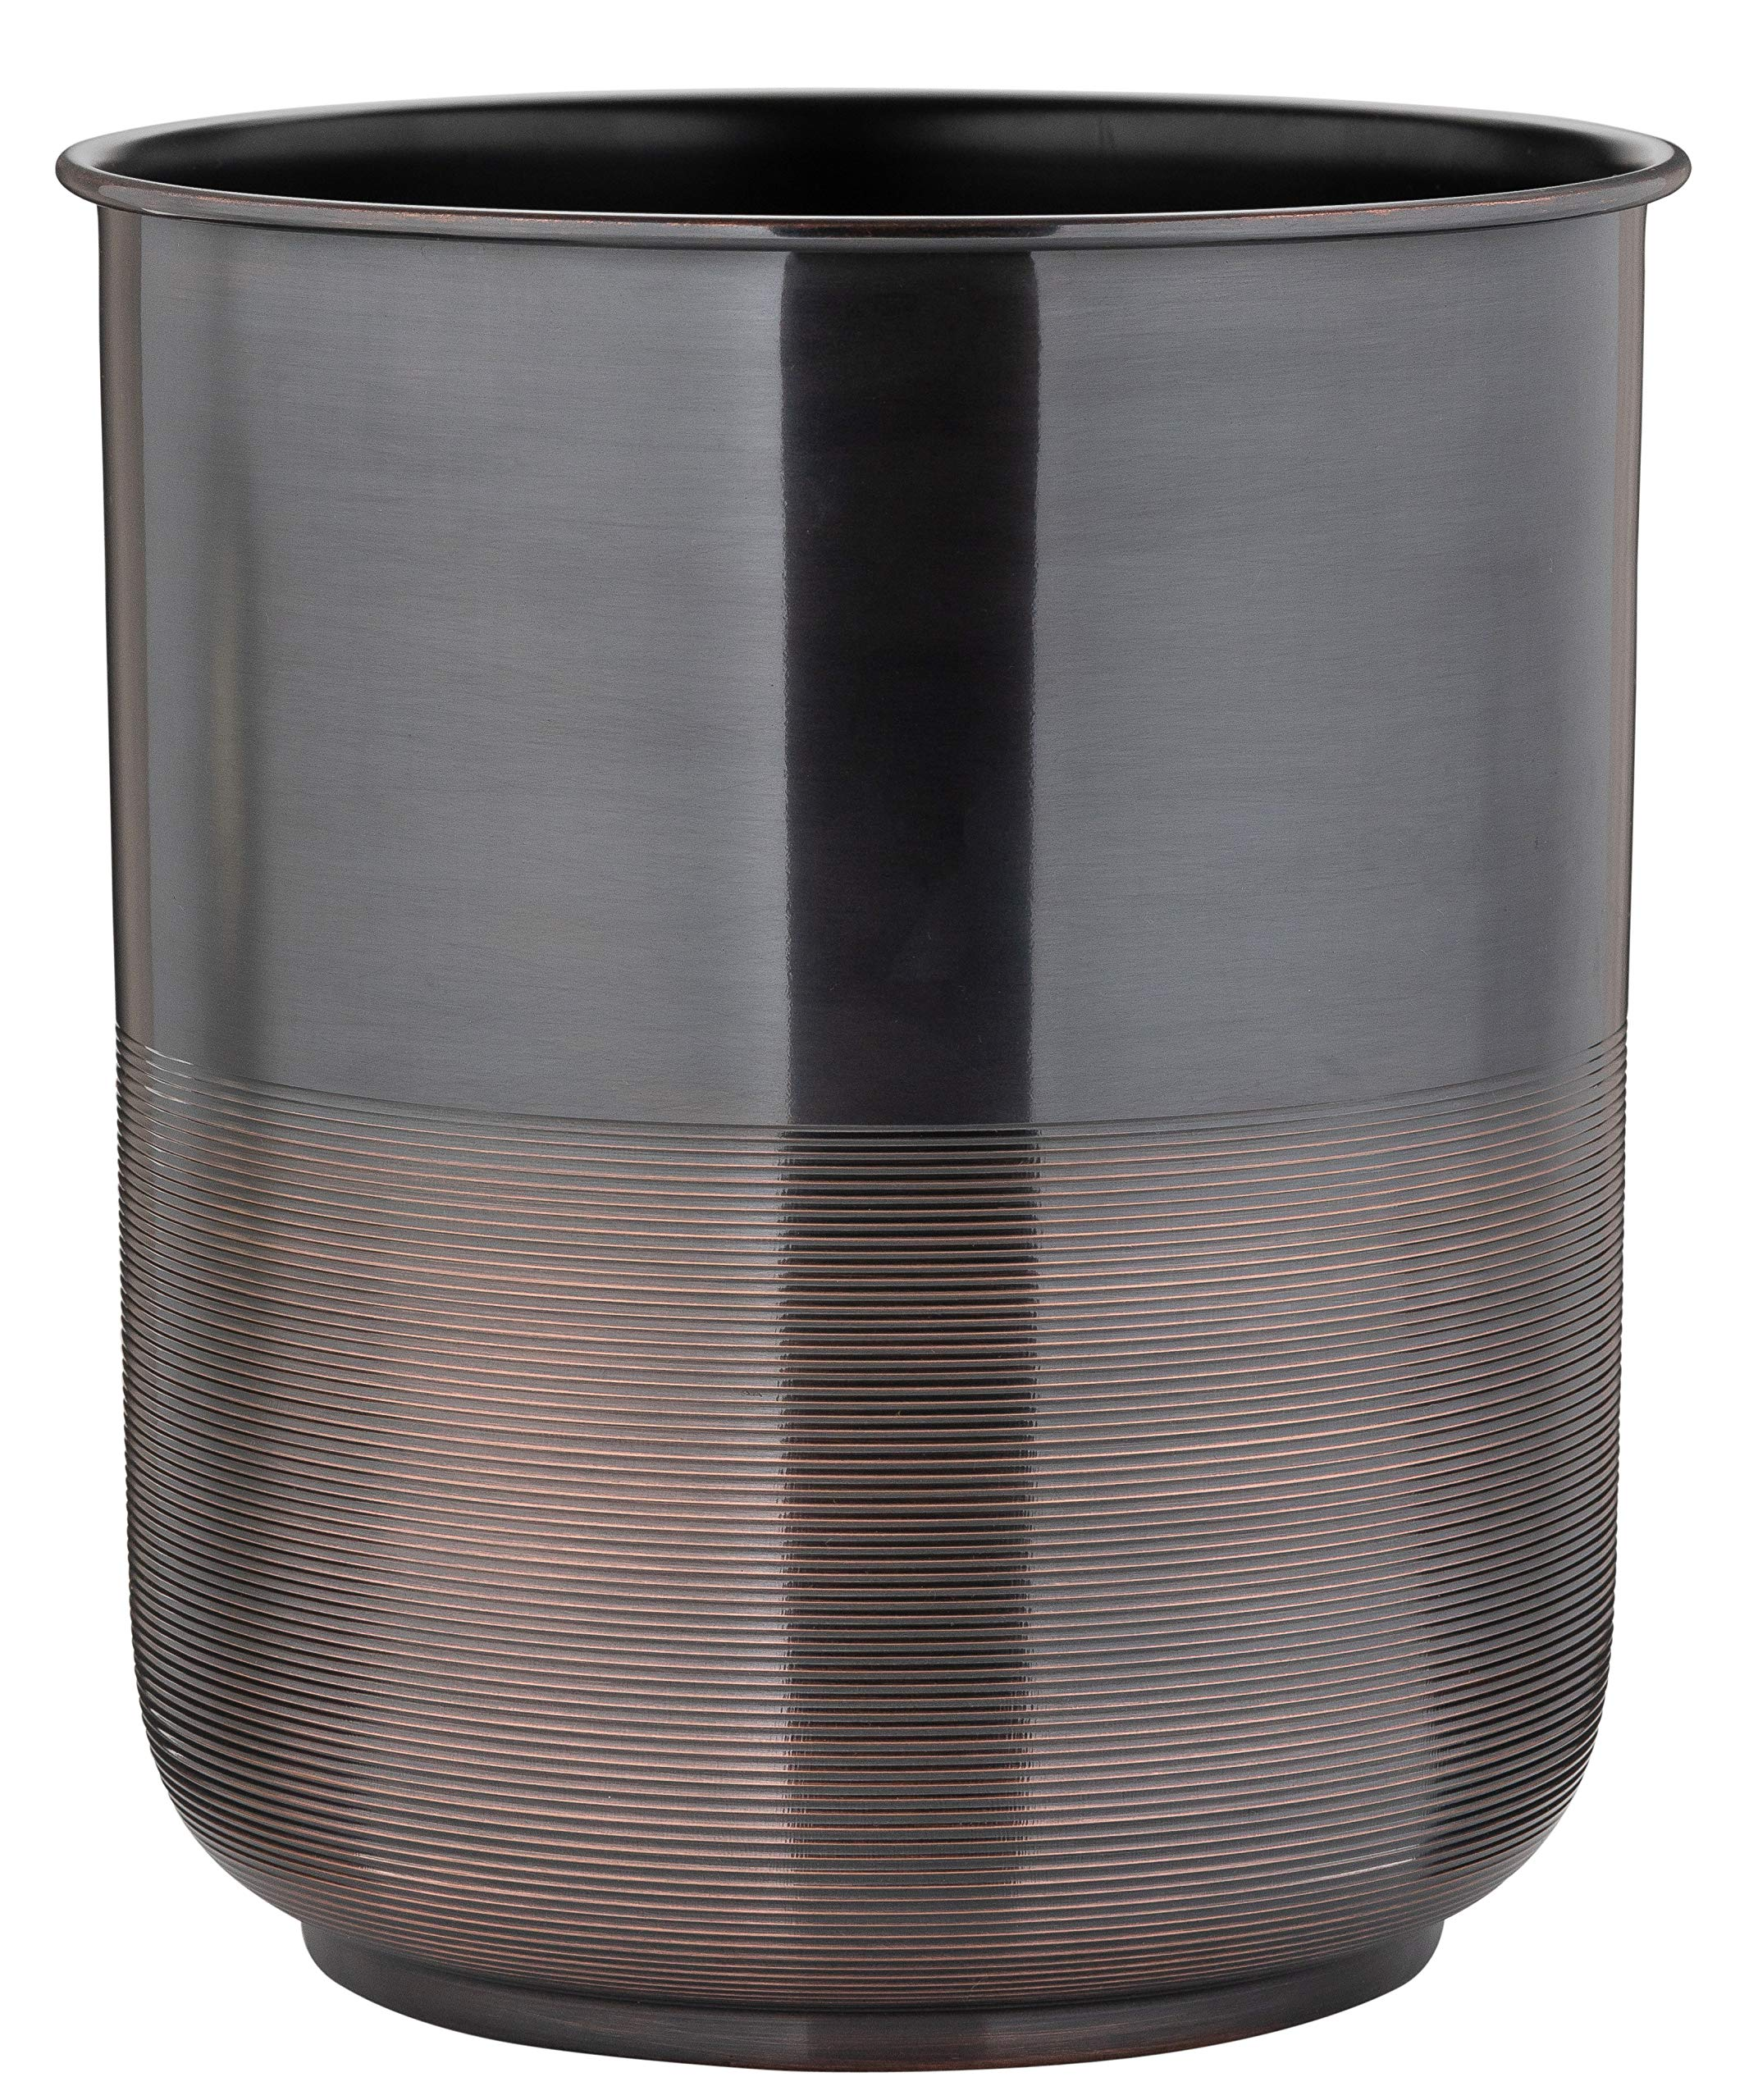 Buffalo Brand Trading Company, Heavyweight Brass, Oil Rubbed Bronze Finish, Wastebasket, 8 Inches by 9.5 Inches